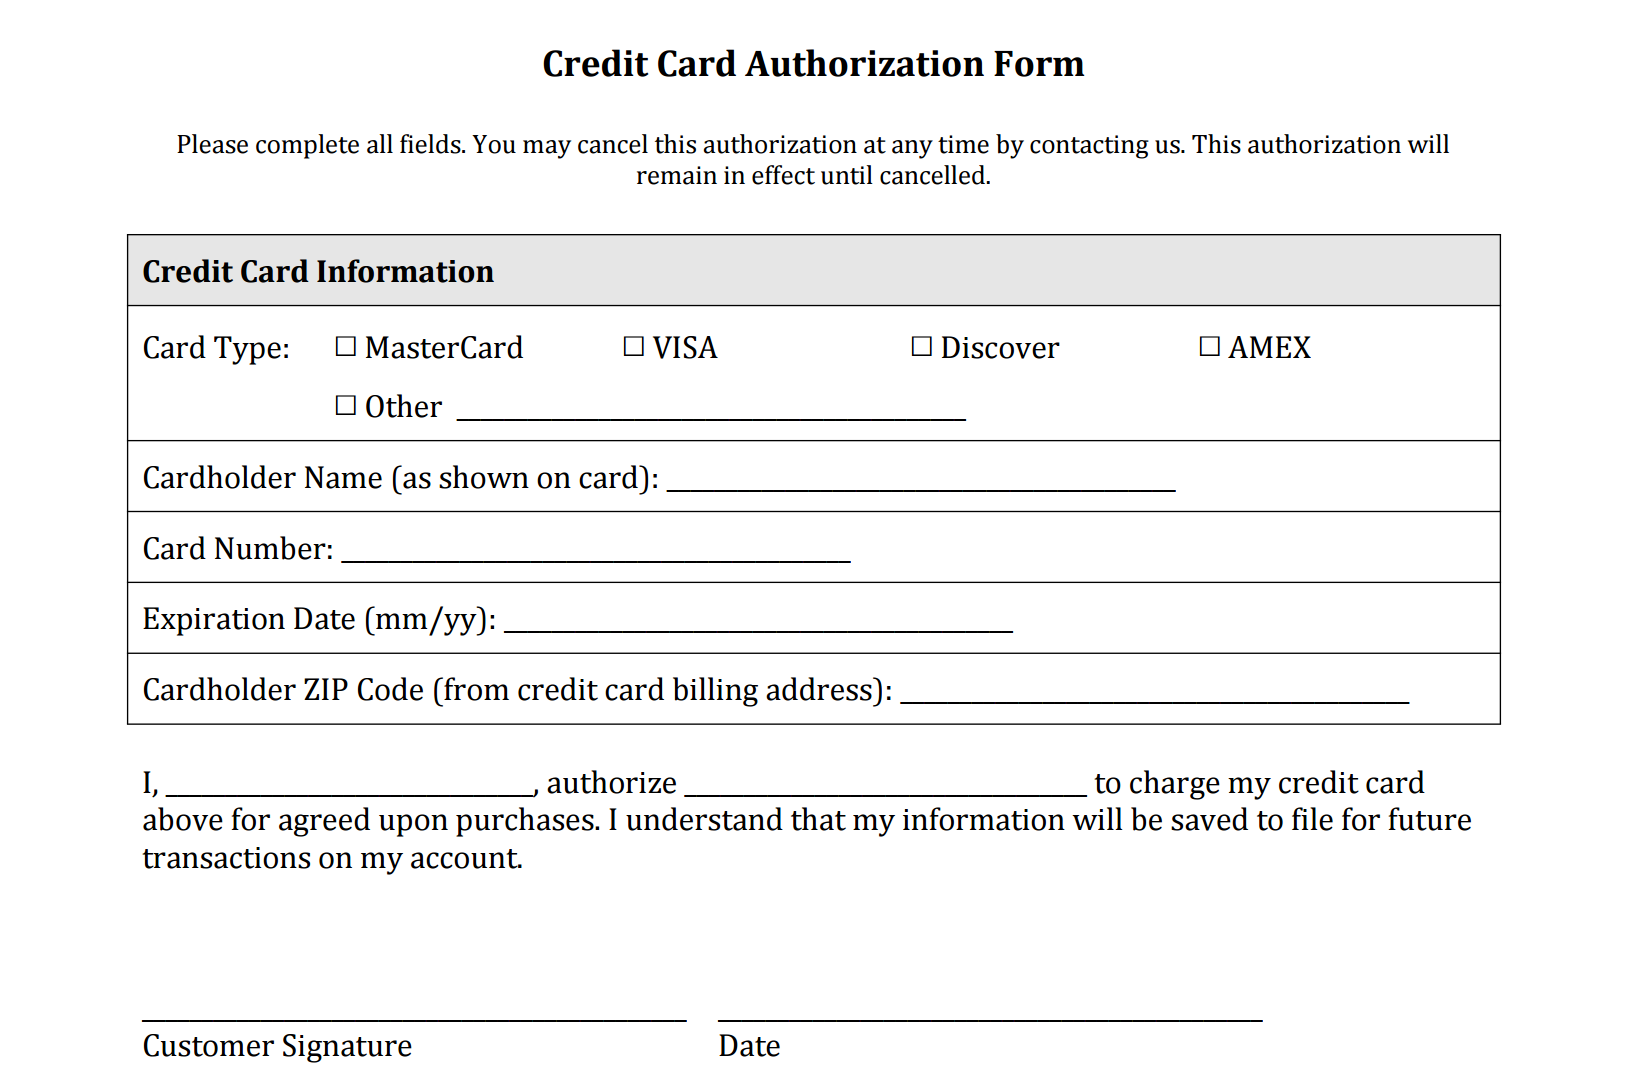 Credit Card Authorization Form Templates Download